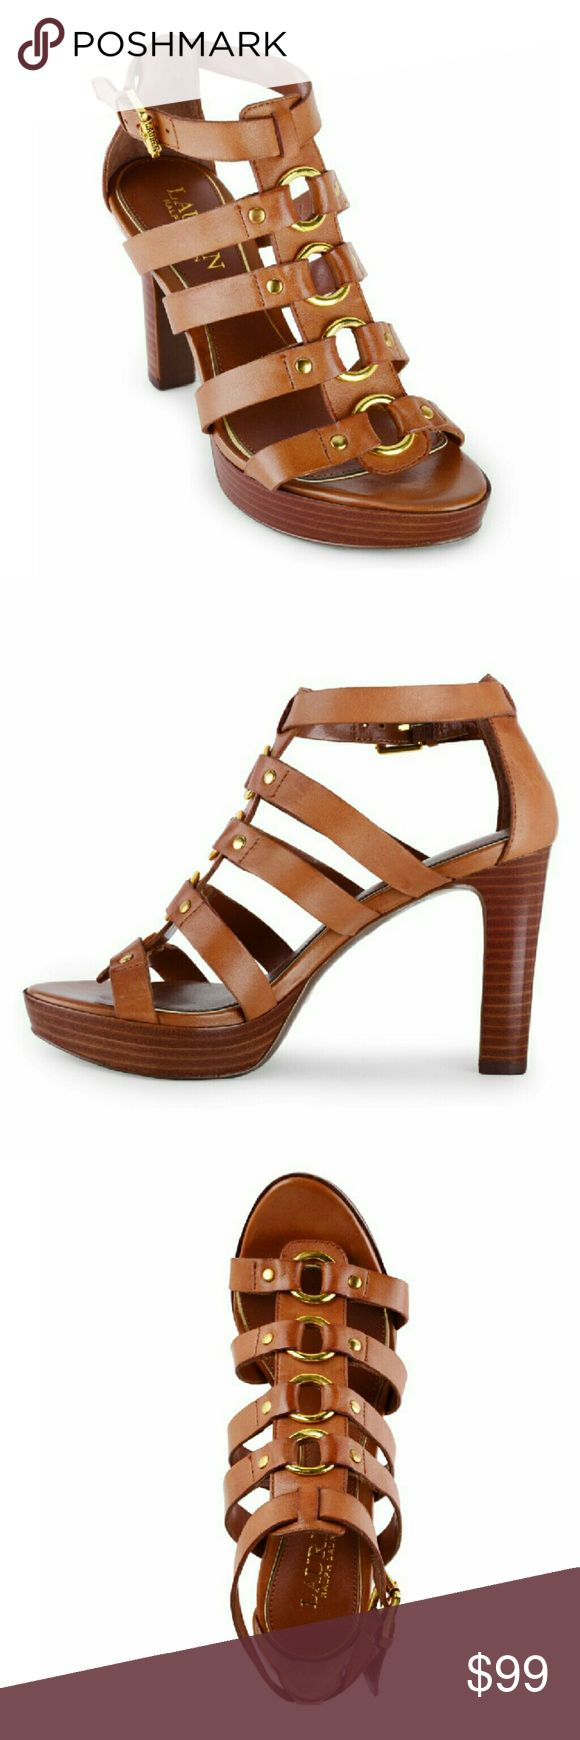 New! Ralph Lauren Ring Leather Platform Sandals With a gladiator design, this sandal from Ralph Lauren, has a timeless style. The ring detail makes the classic look stunning!  Brand New With Box   1-in. platform; 4-in. heel  Leather  Hand Wash ? Ralph Lauren  Shoes